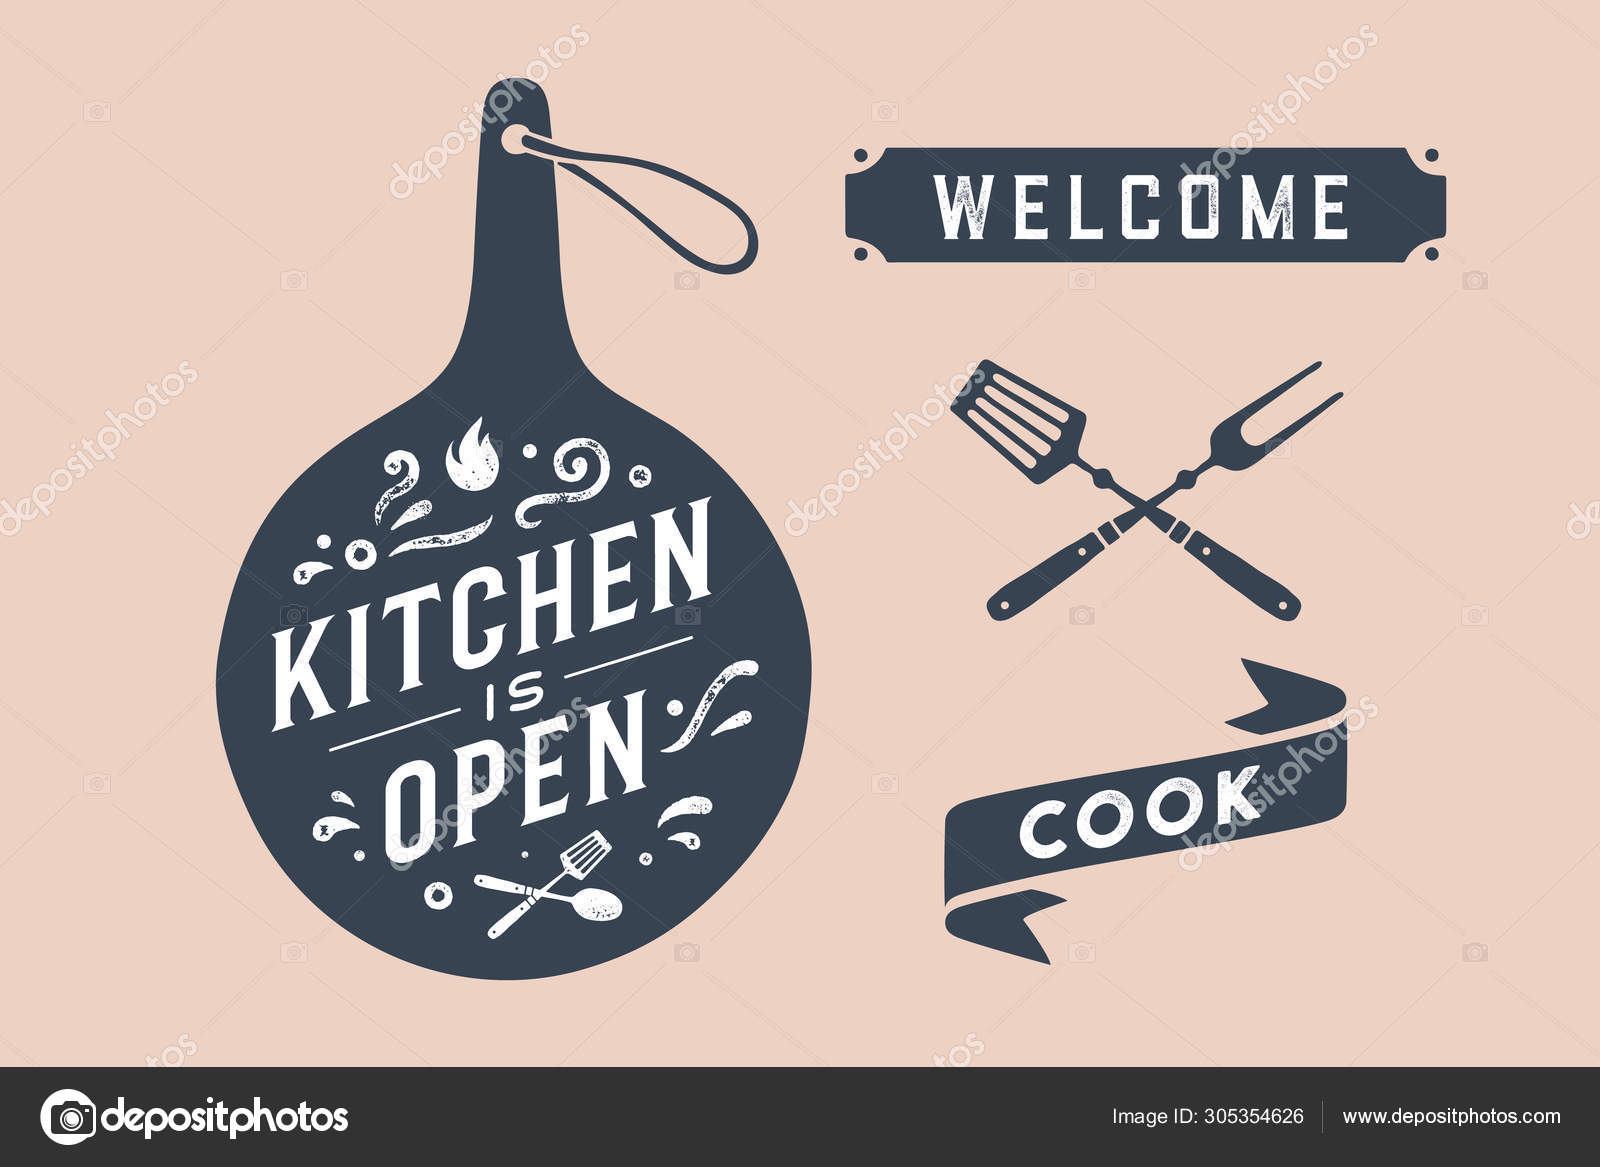 Kitchen Open Wall Decor Poster Sign Quote Poster Kitchen Design Stock Vector C Foxysgraphic 305354626